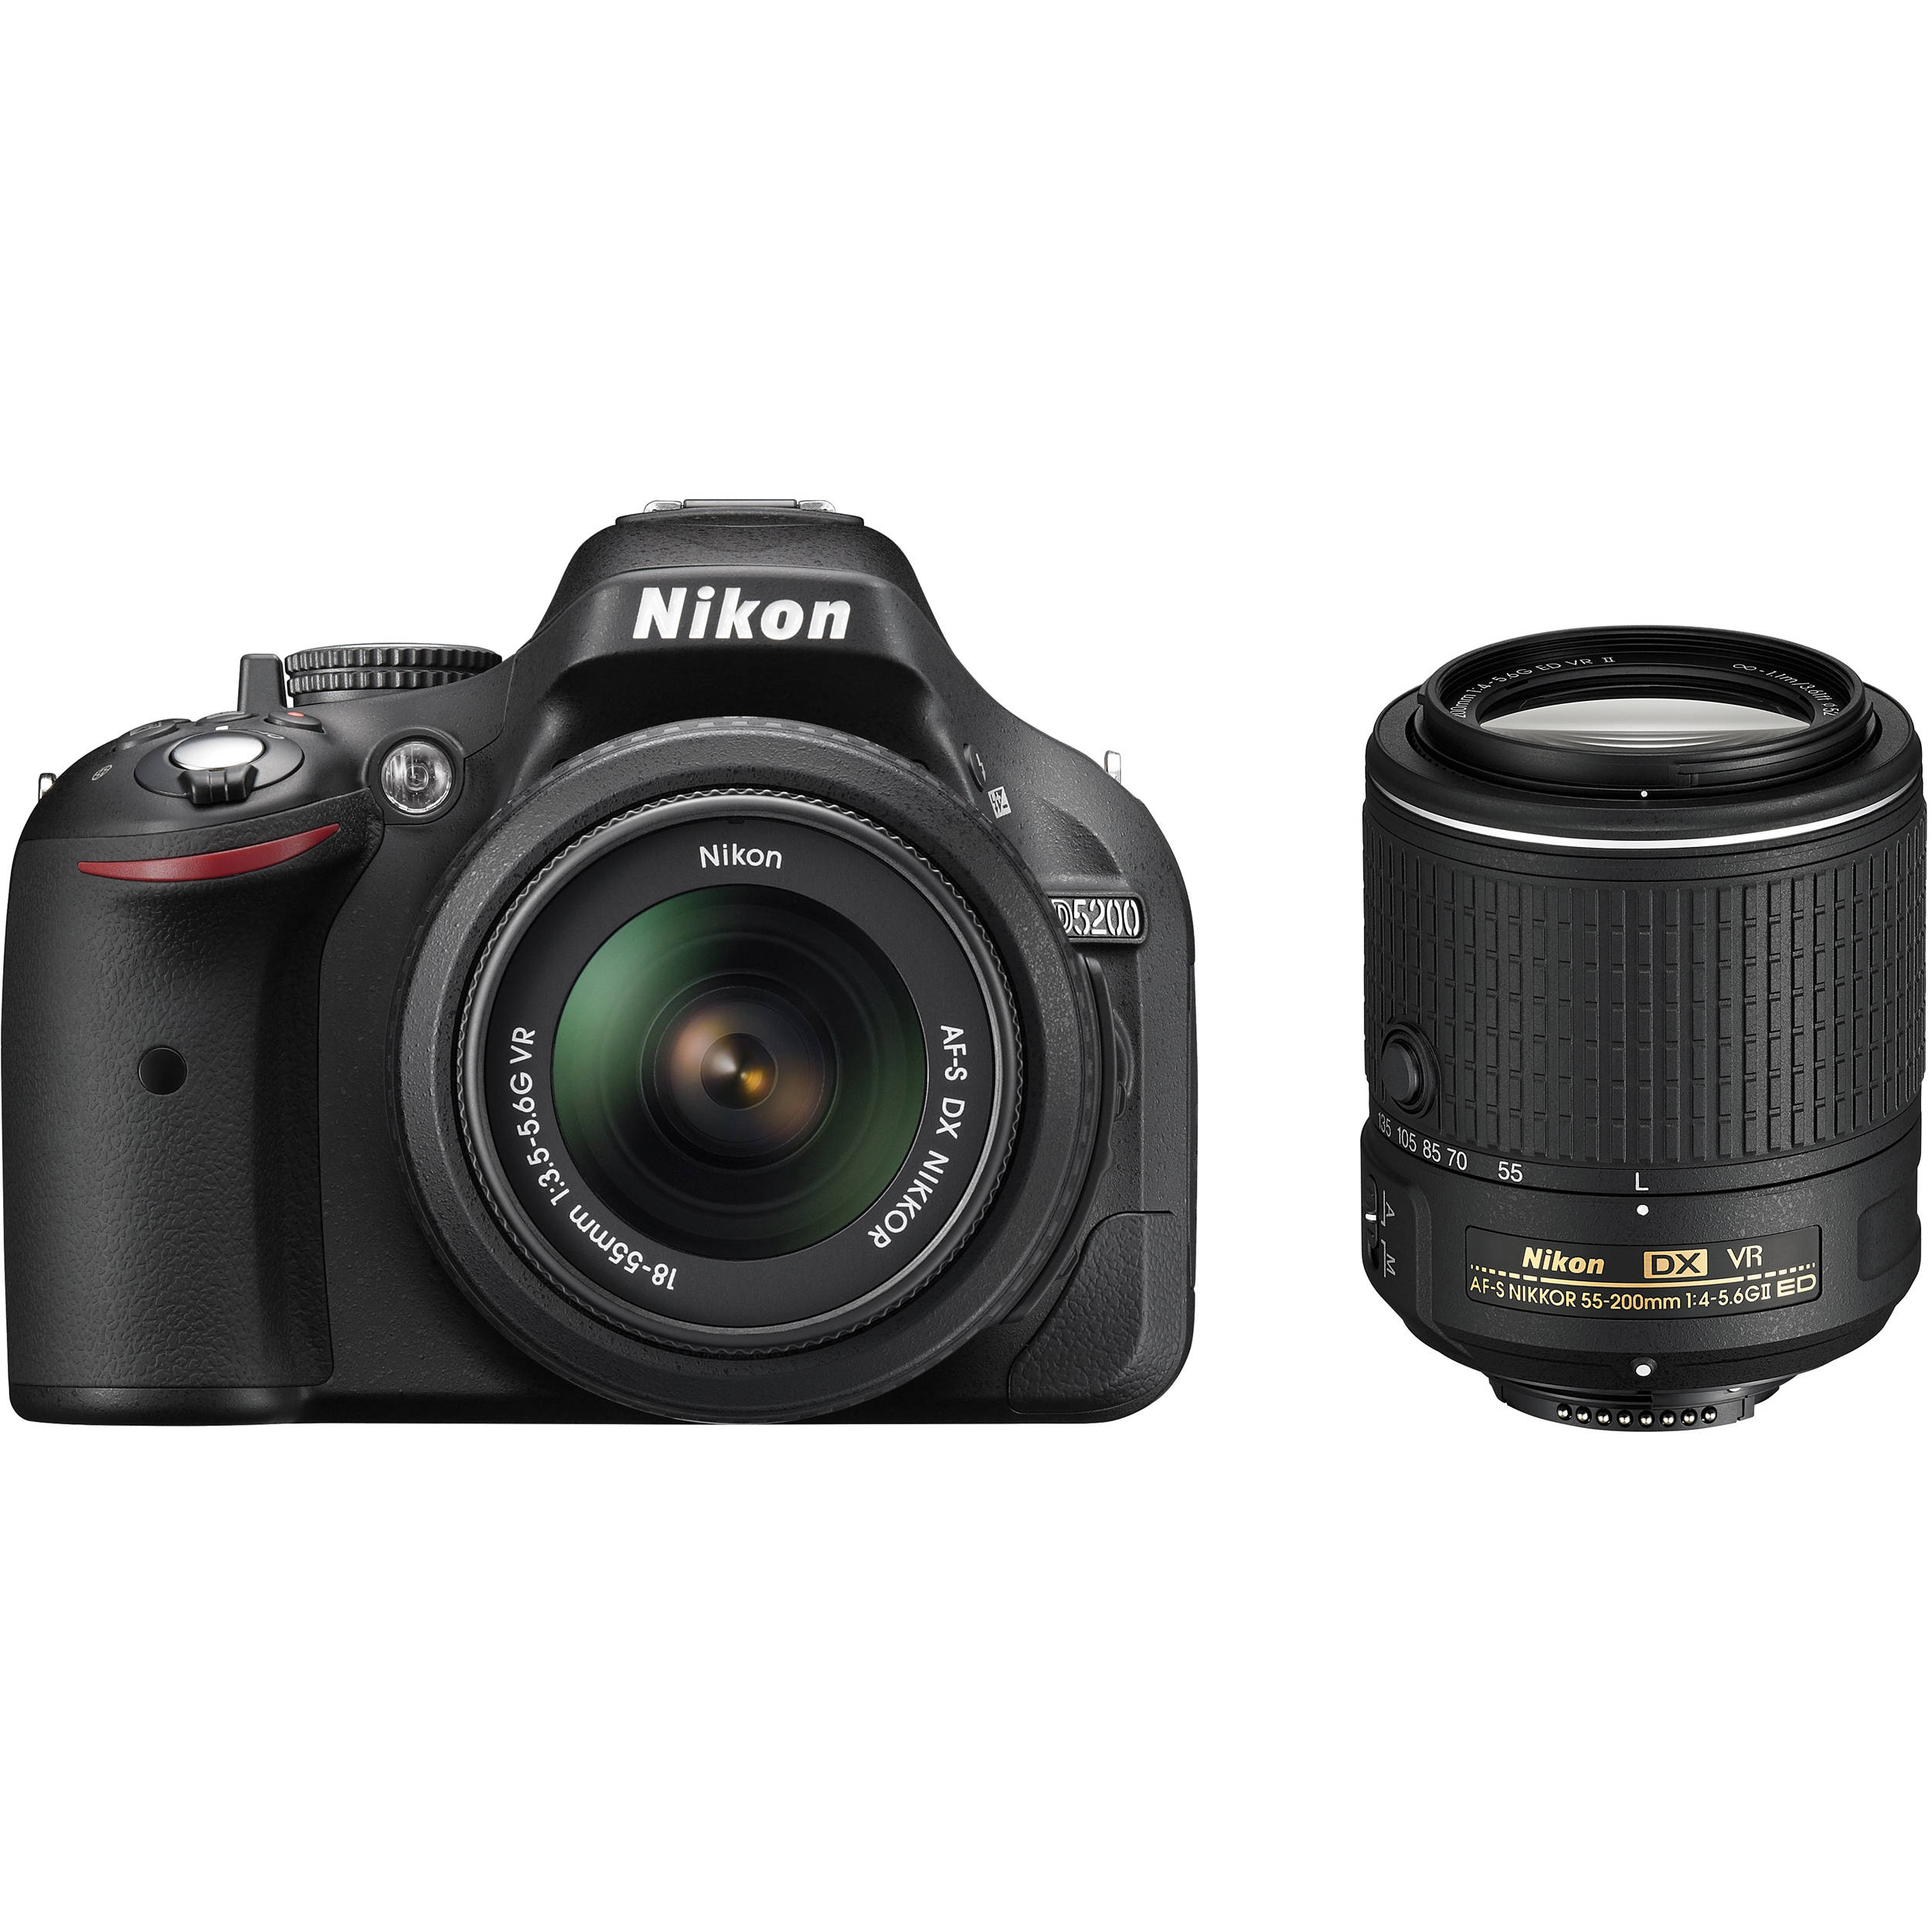 Nikon D5200 Dslr Camera With 18 55mm And 55 200mm Lenses Black